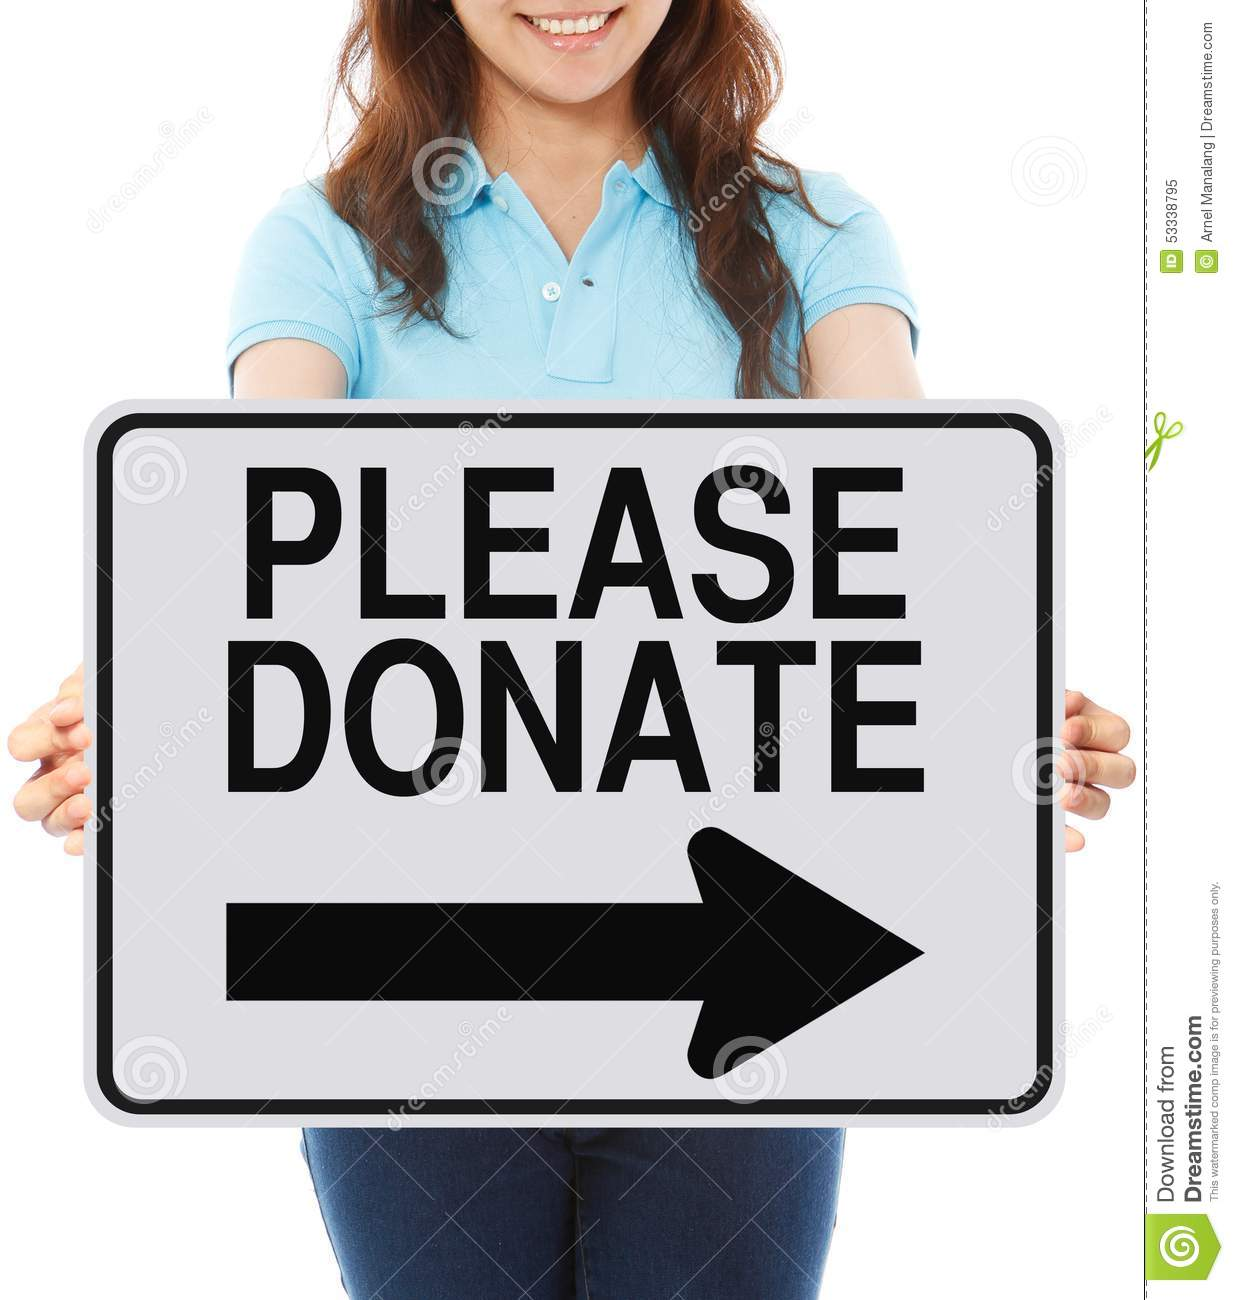 Please Donate stock image. Image of donate, white, road ...